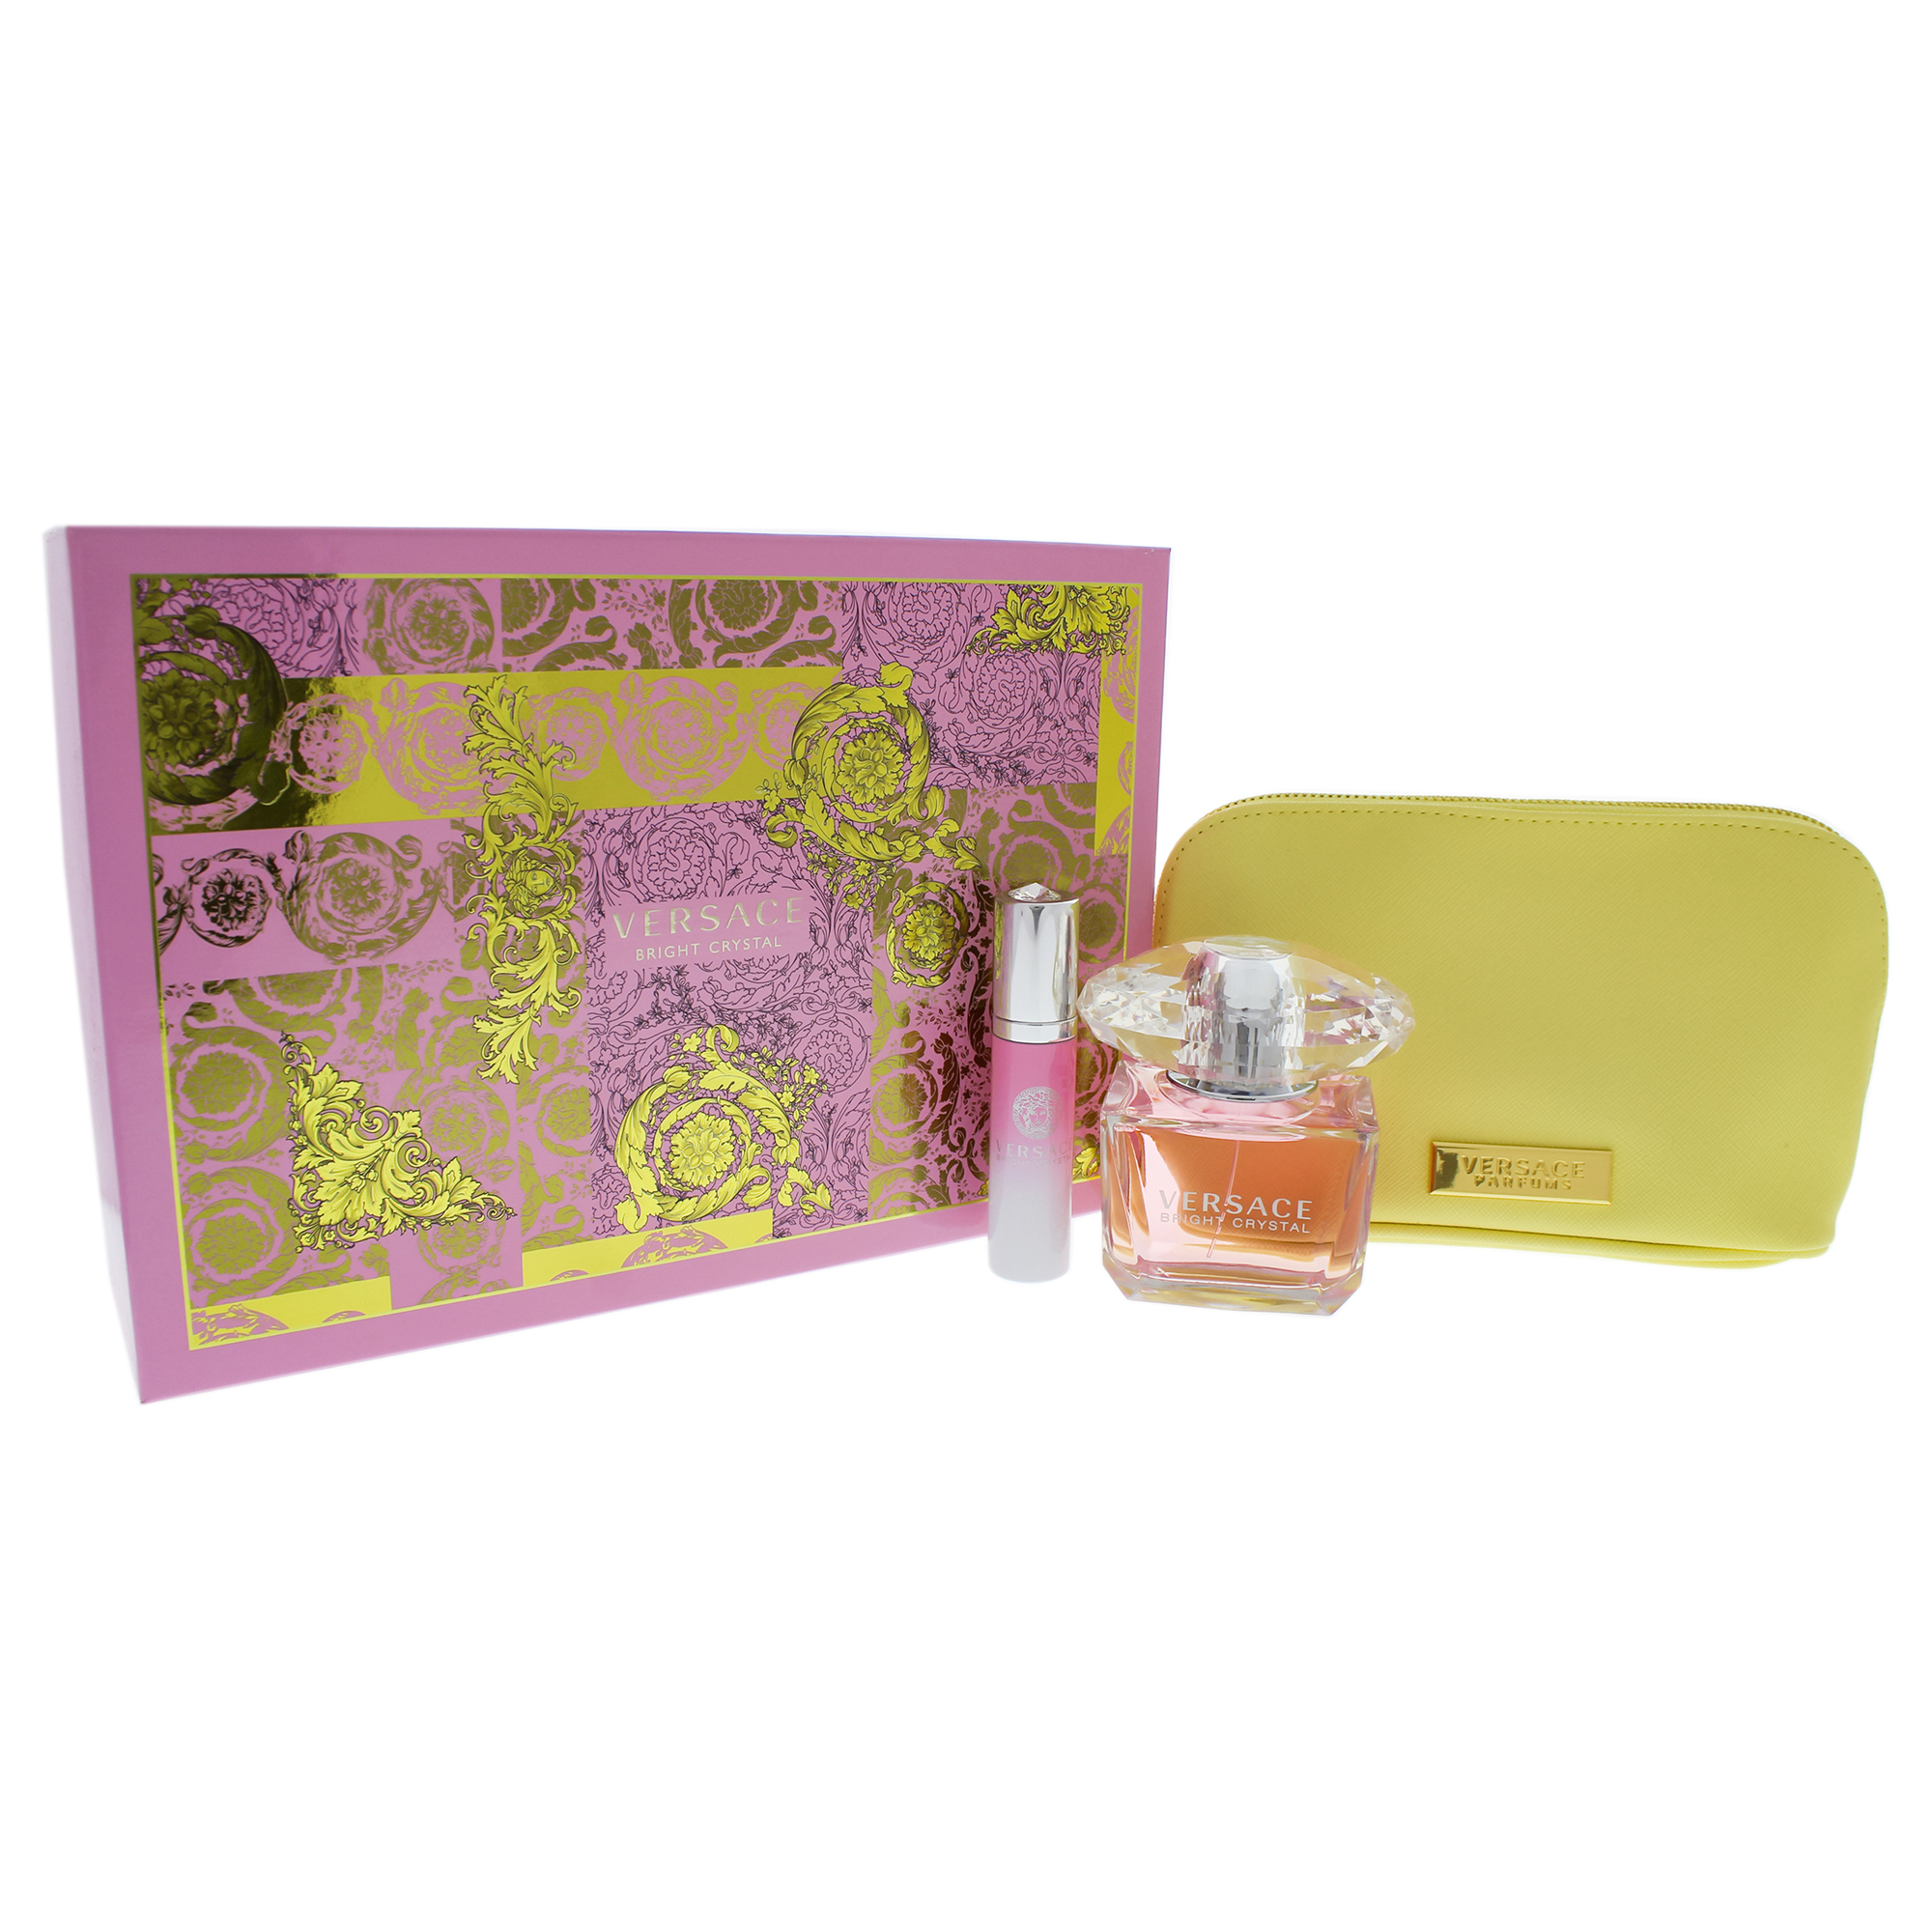 Versace Bright Crystal by Versace for Women – 3 Piece Gift Set with 3oz EDT Spray, 0.3oz EDT Spray, Versace Y